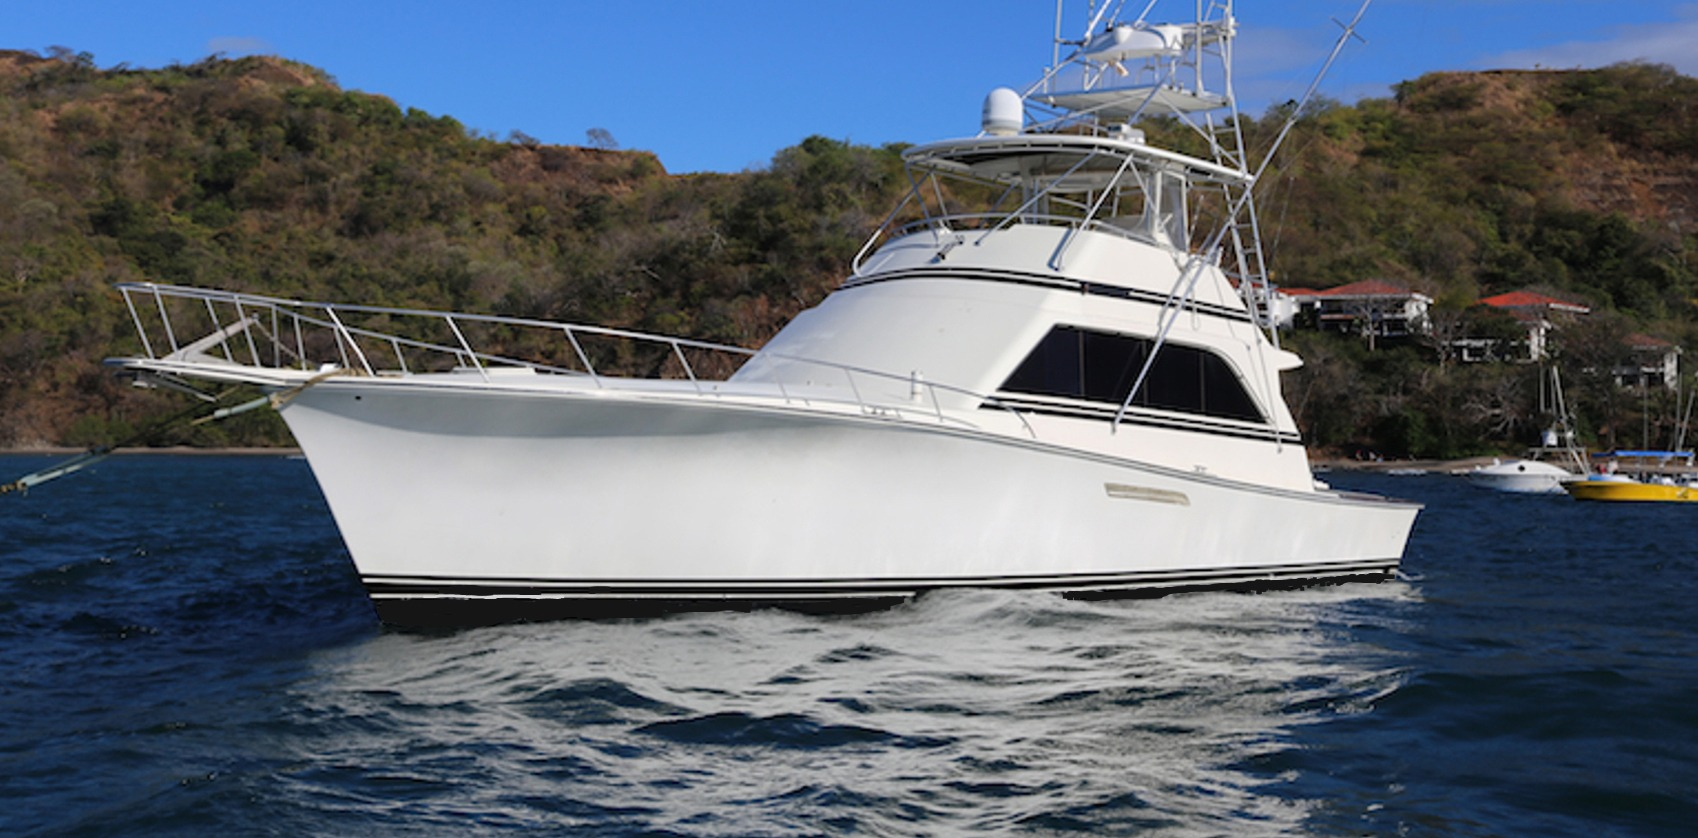 Come Aboard Your Charter Boat Costa Rica Fishing Charters